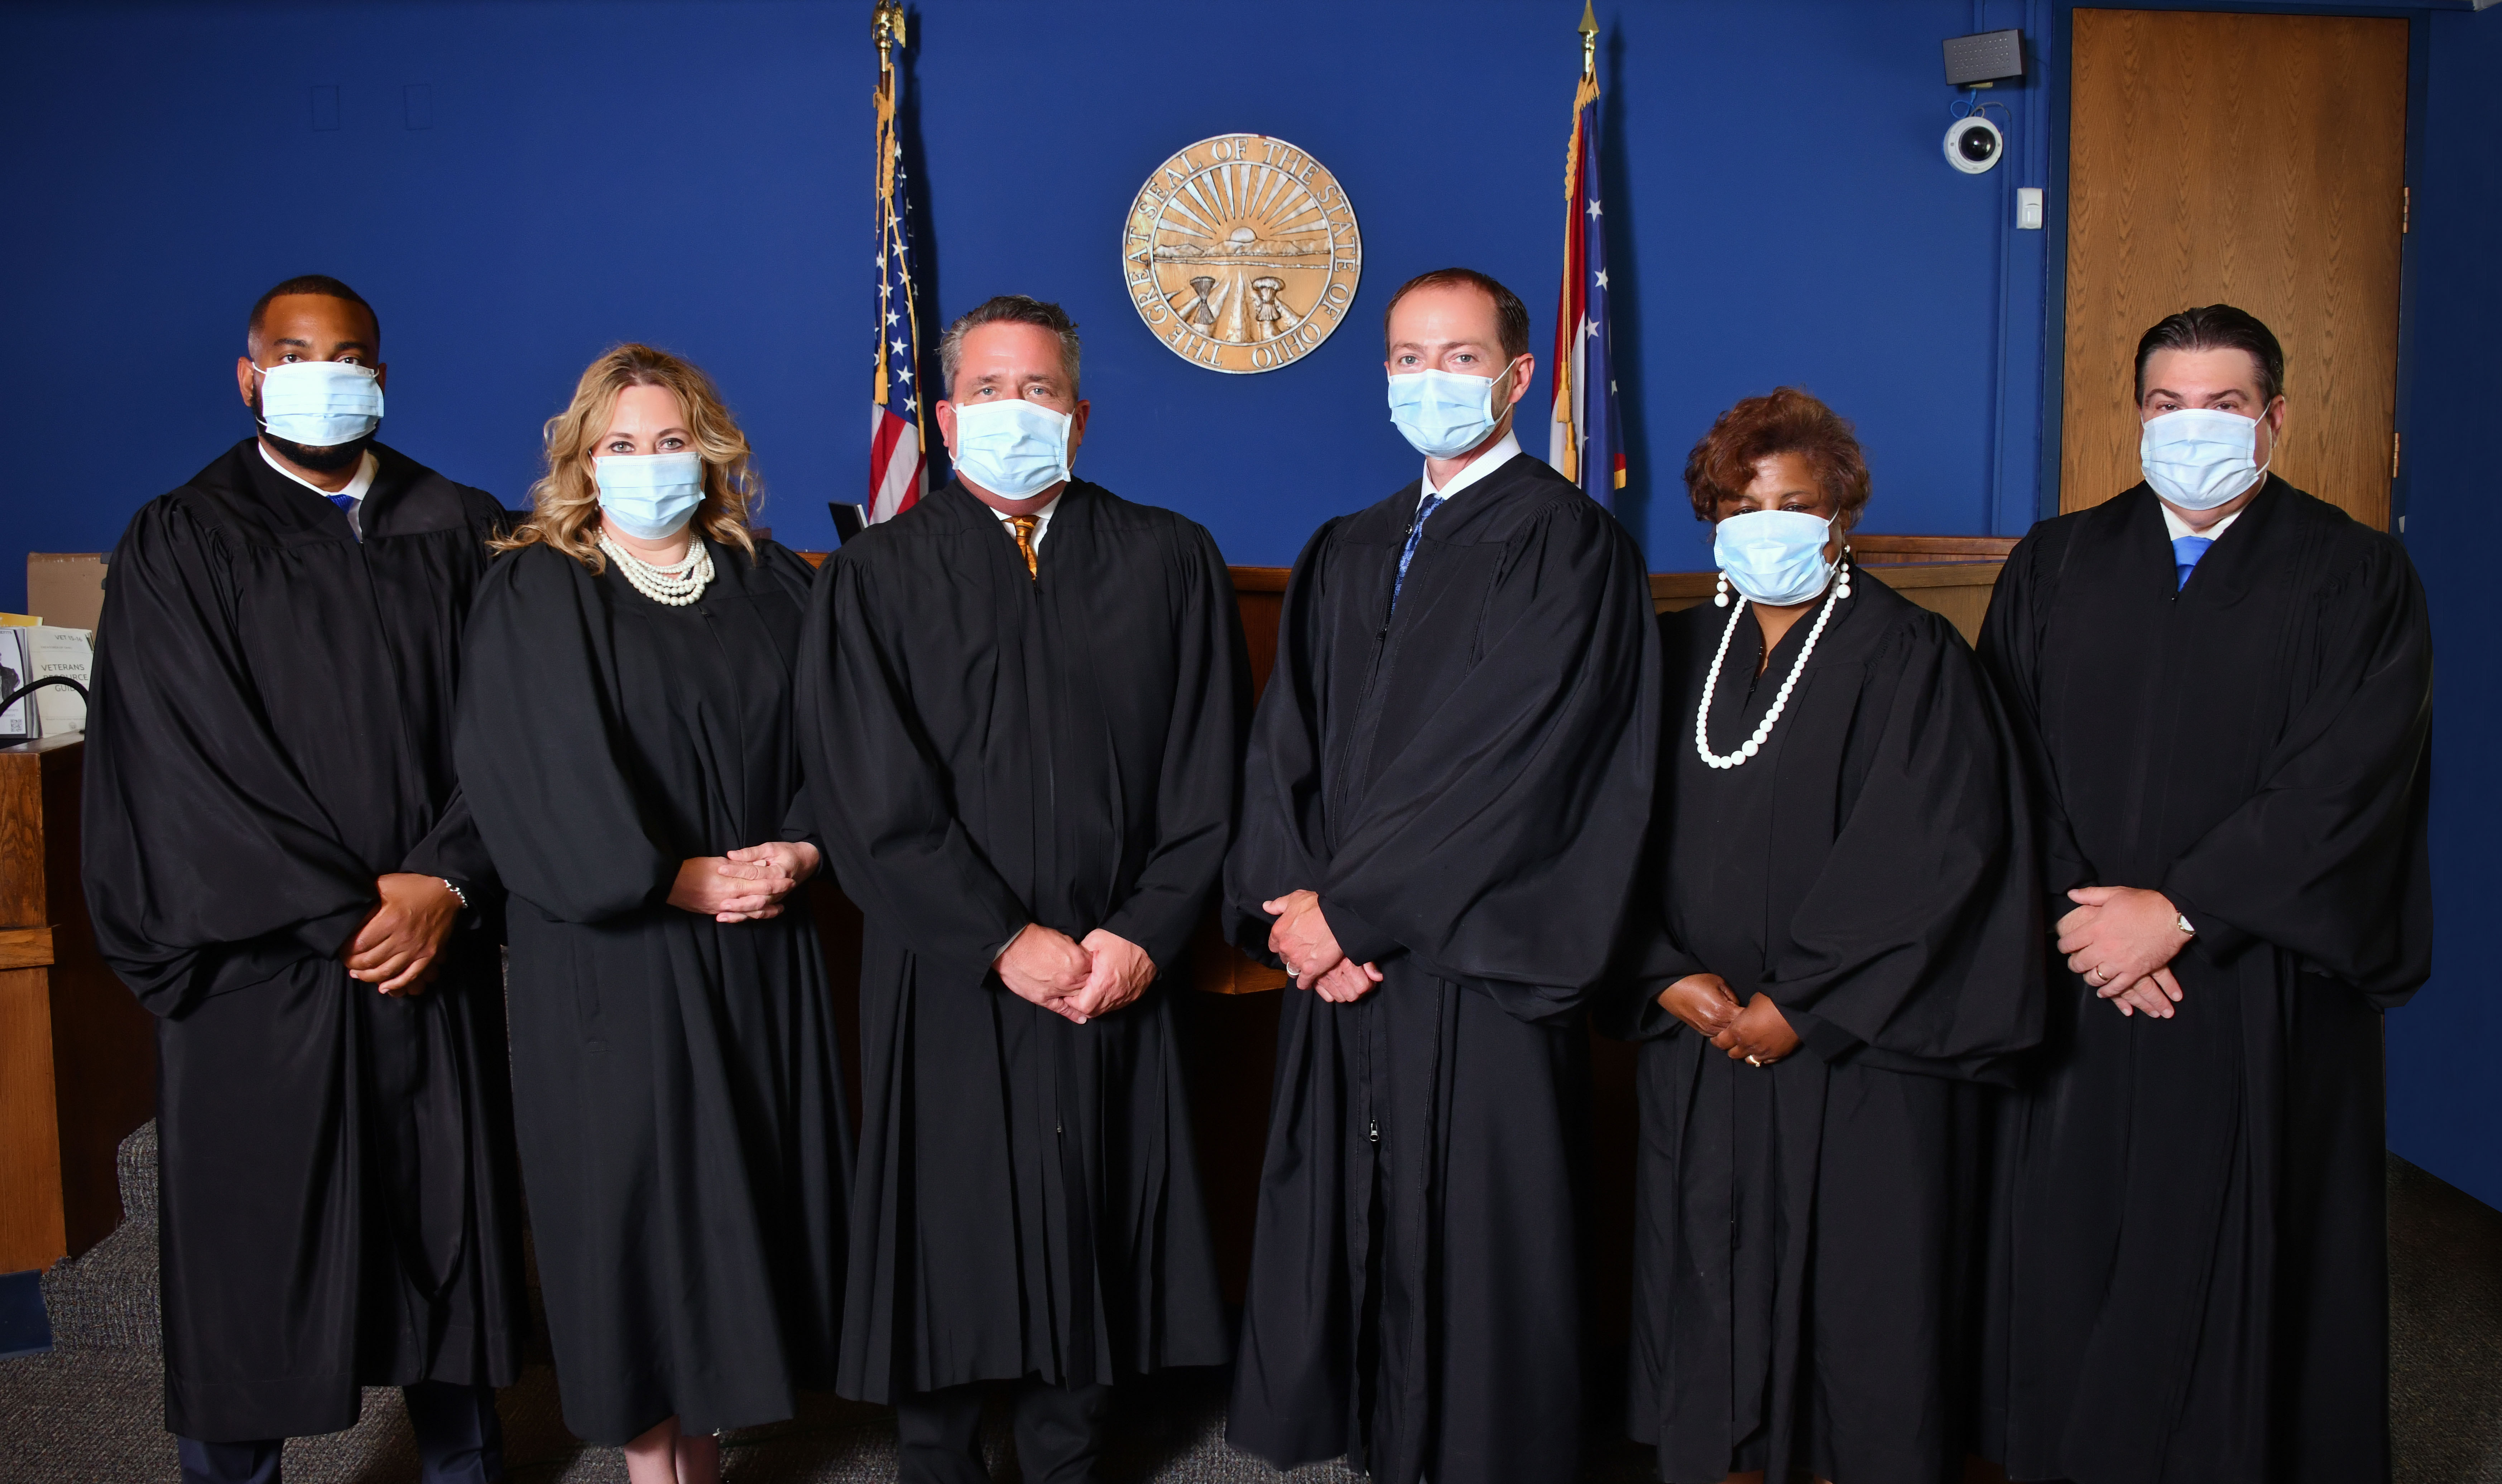 Akron Municipal Court Judges with Masks